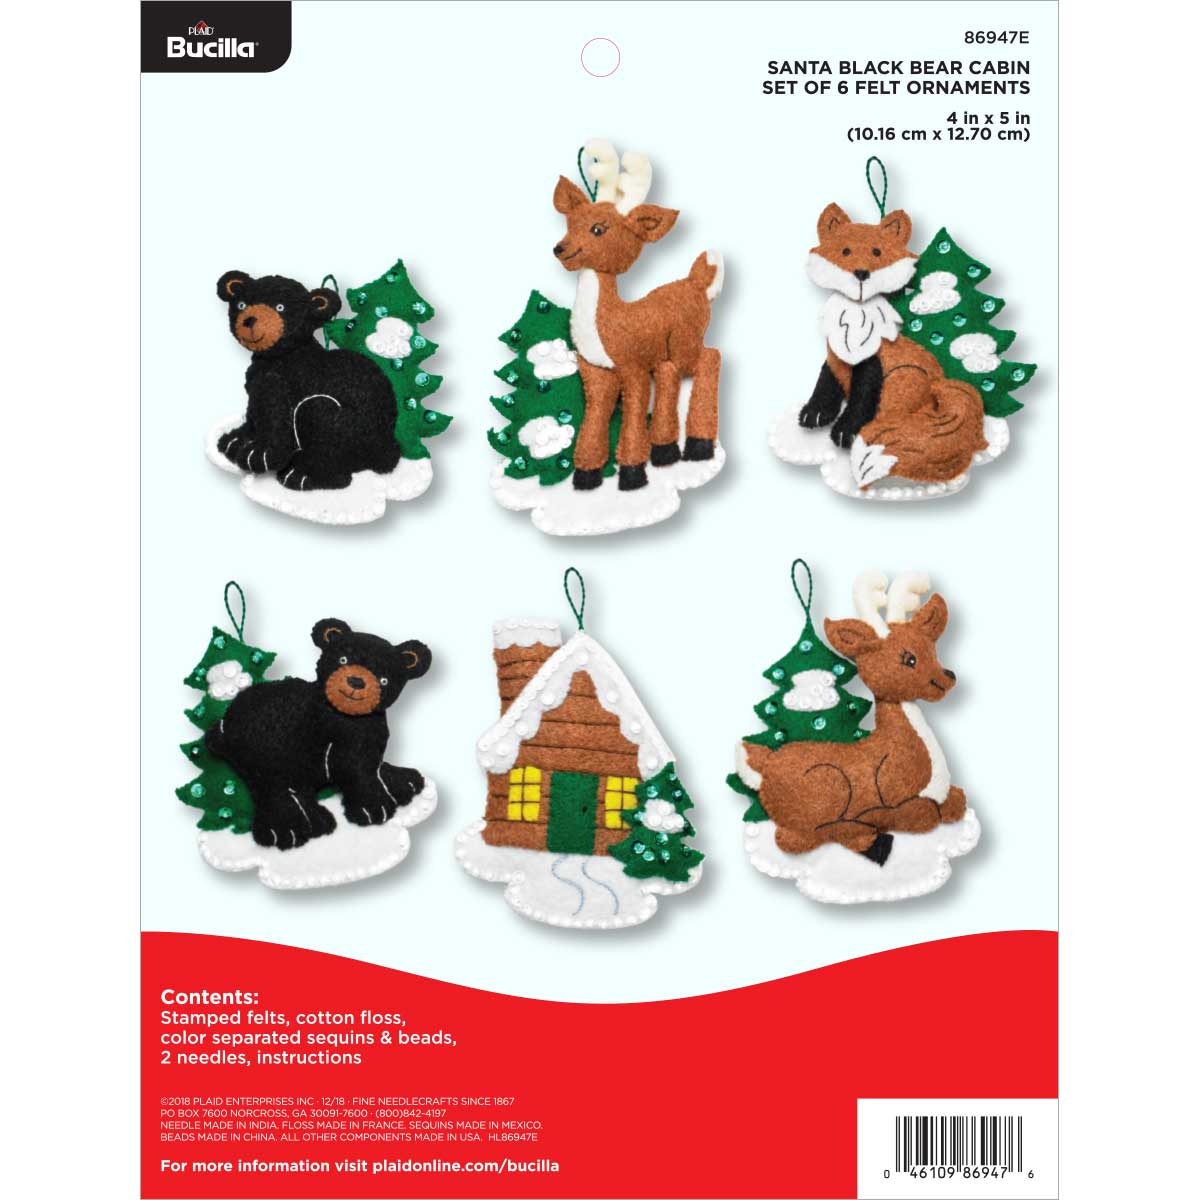 Bucilla ® Seasonal - Felt - Ornament Kits - Santa's Black Bear Cabin